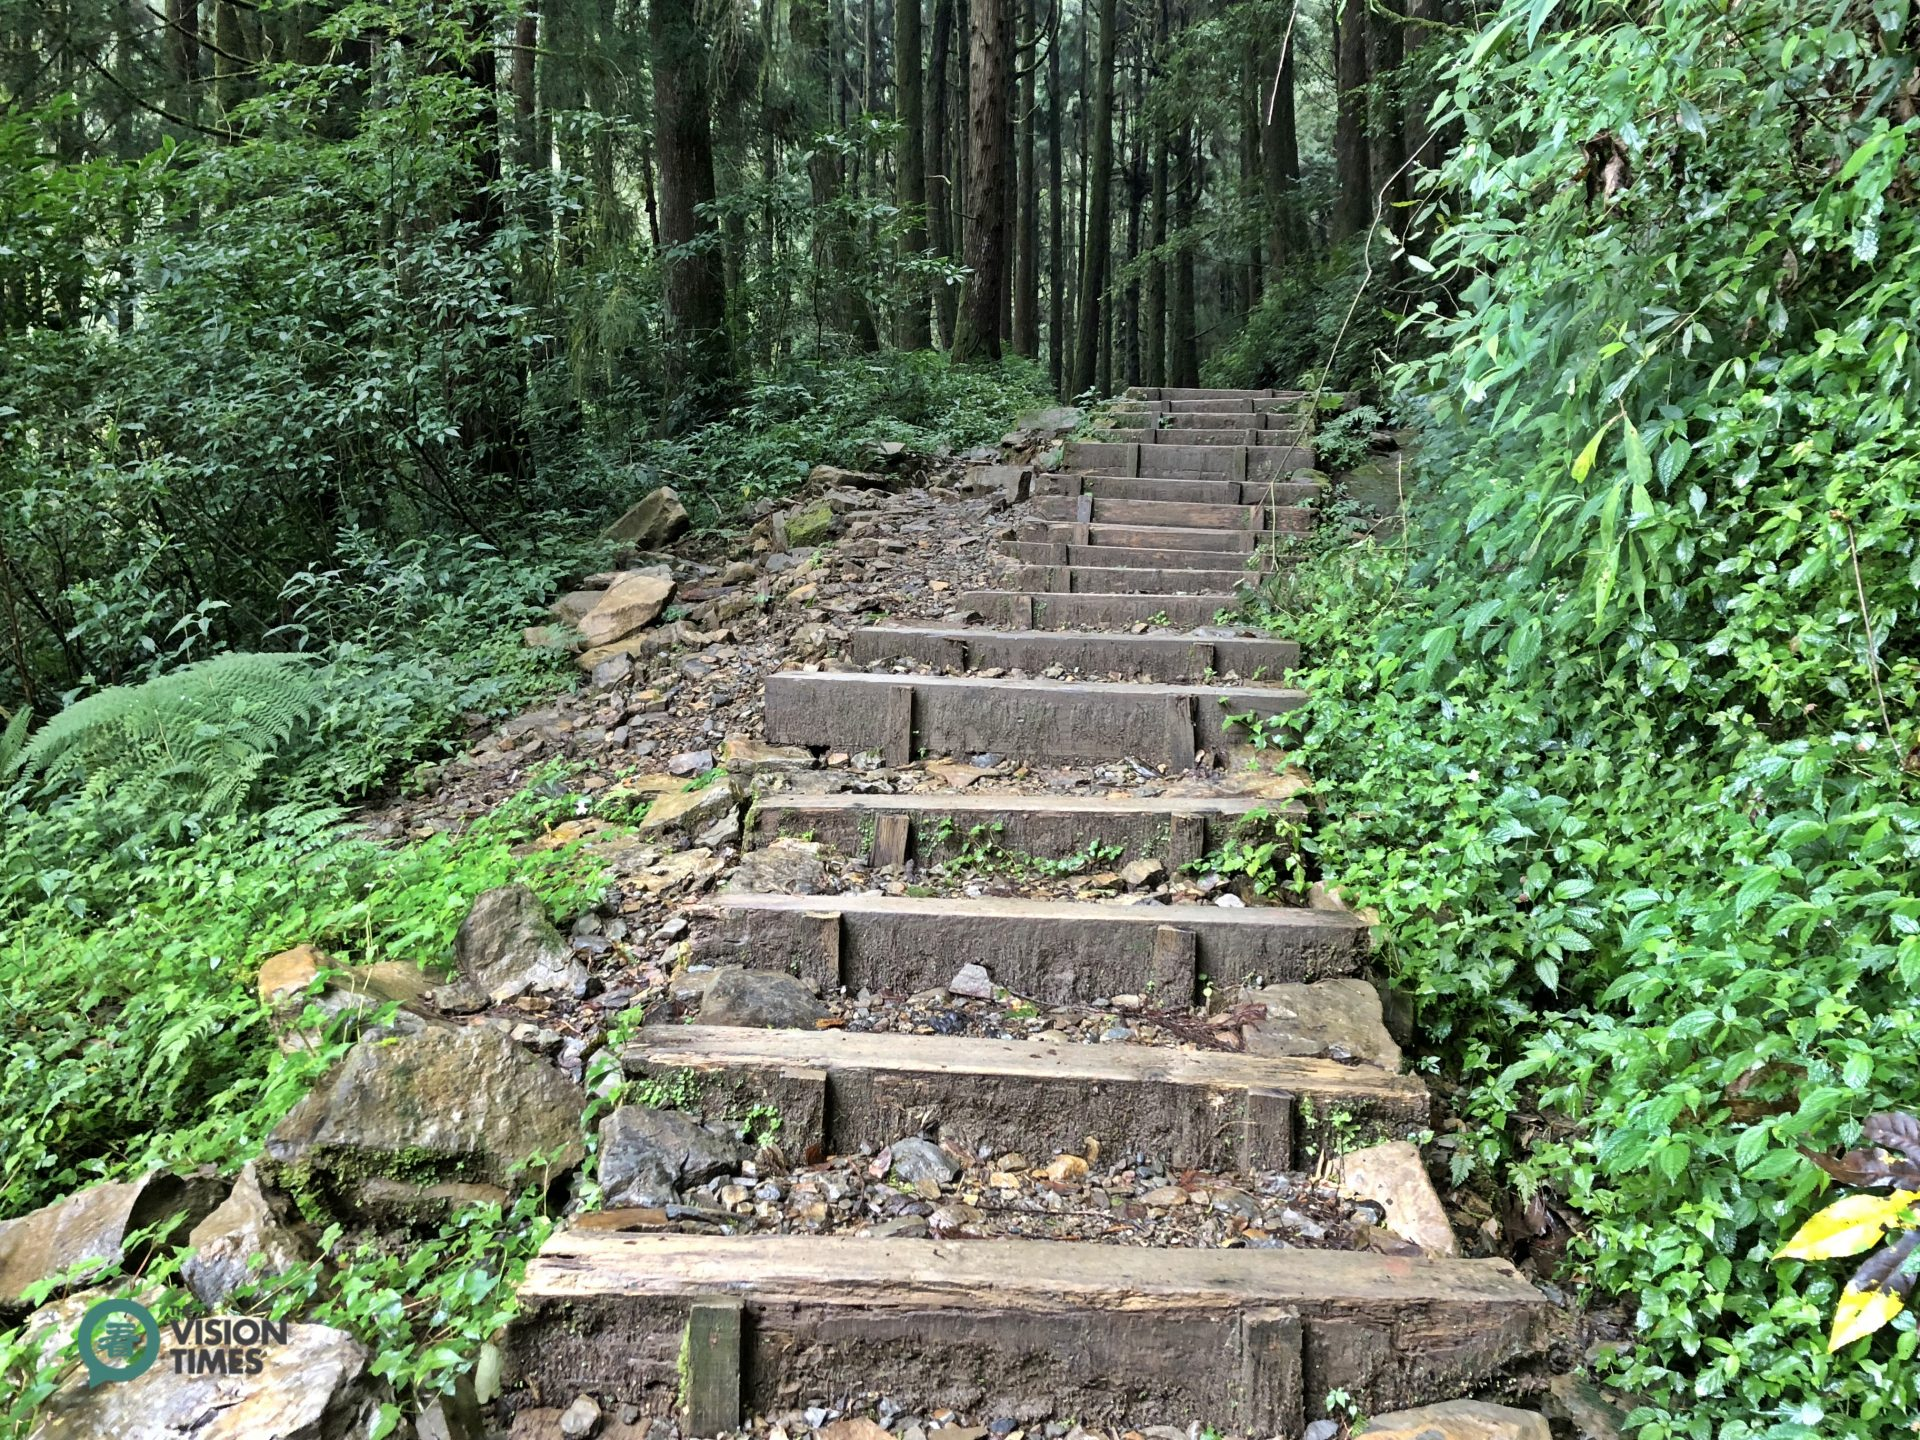 There are many steps on wooden ties along Tefuye Old Trail. (Image: Billy Shyu / Vision Times)